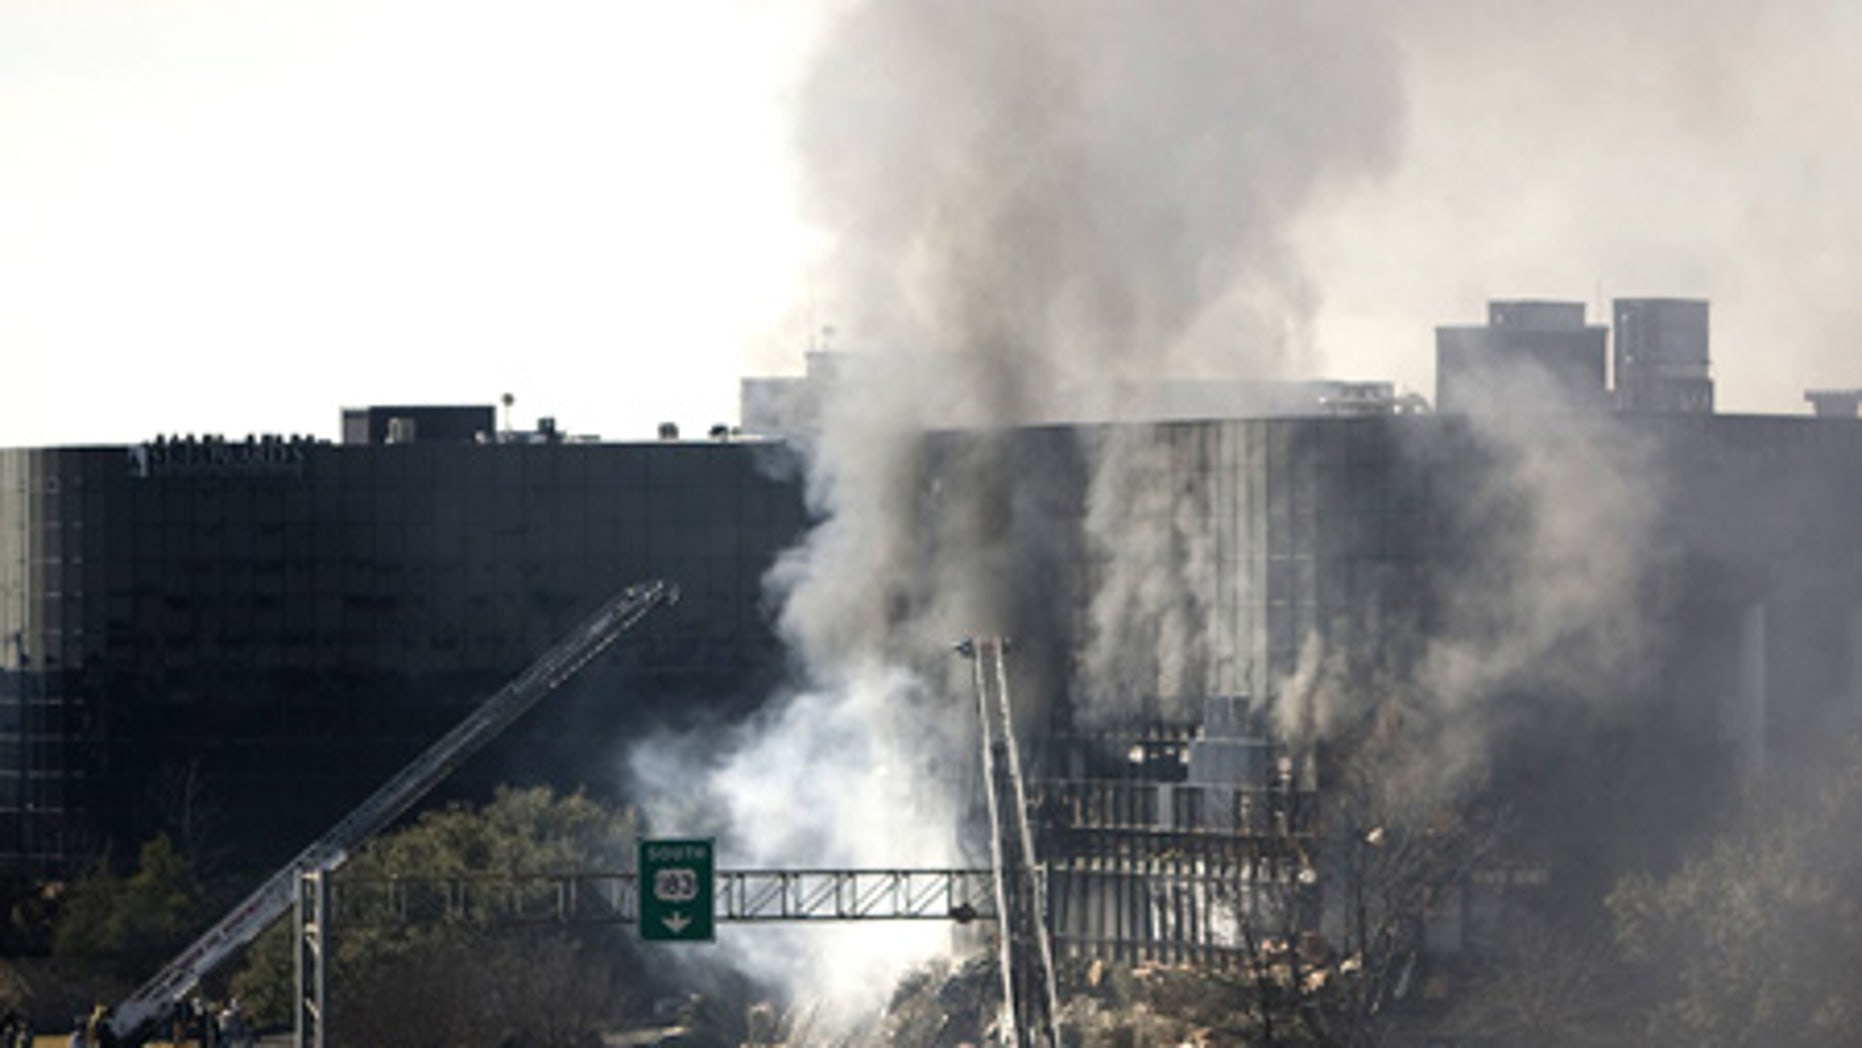 Feb. 18: Smoke billows from a 7 story building after a small plane crashed into it in Austin.